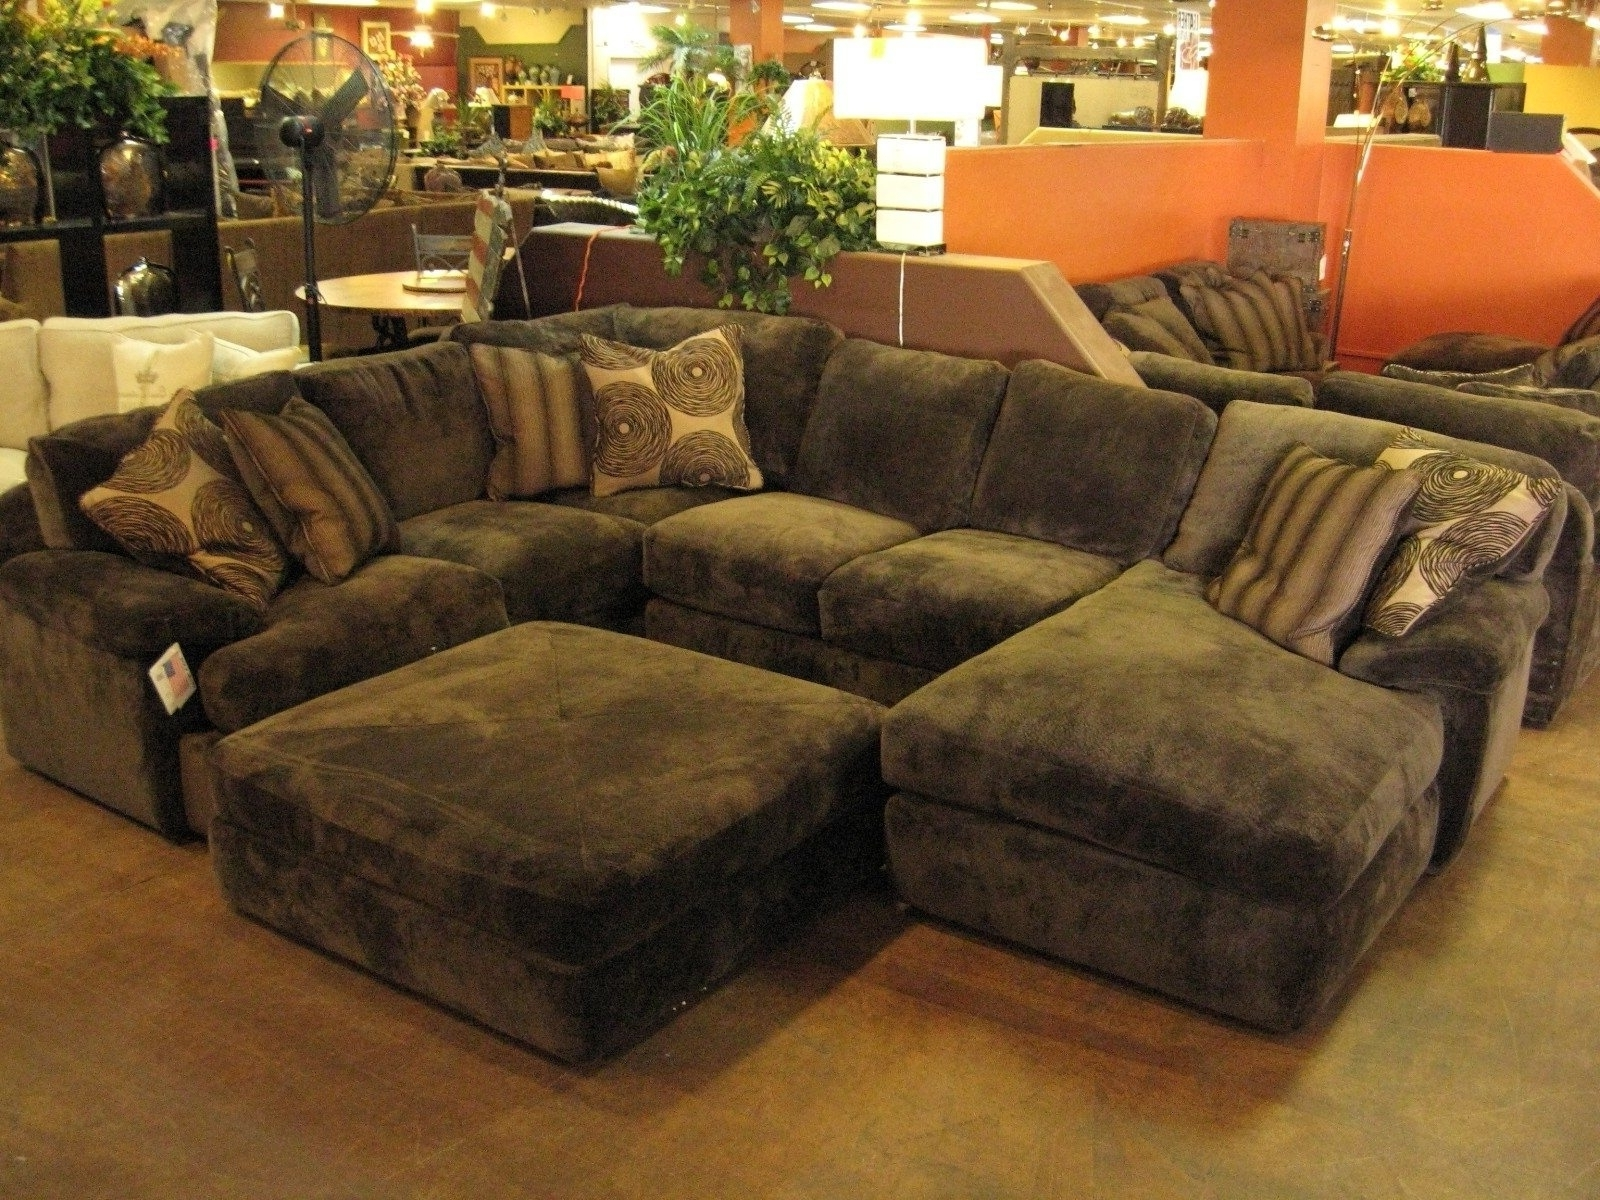 Most Recently Released Leather Sectionals With Ottoman Inside Stylish Sectional Sofa With Oversized Ottoman – Mediasupload (View 5 of 15)